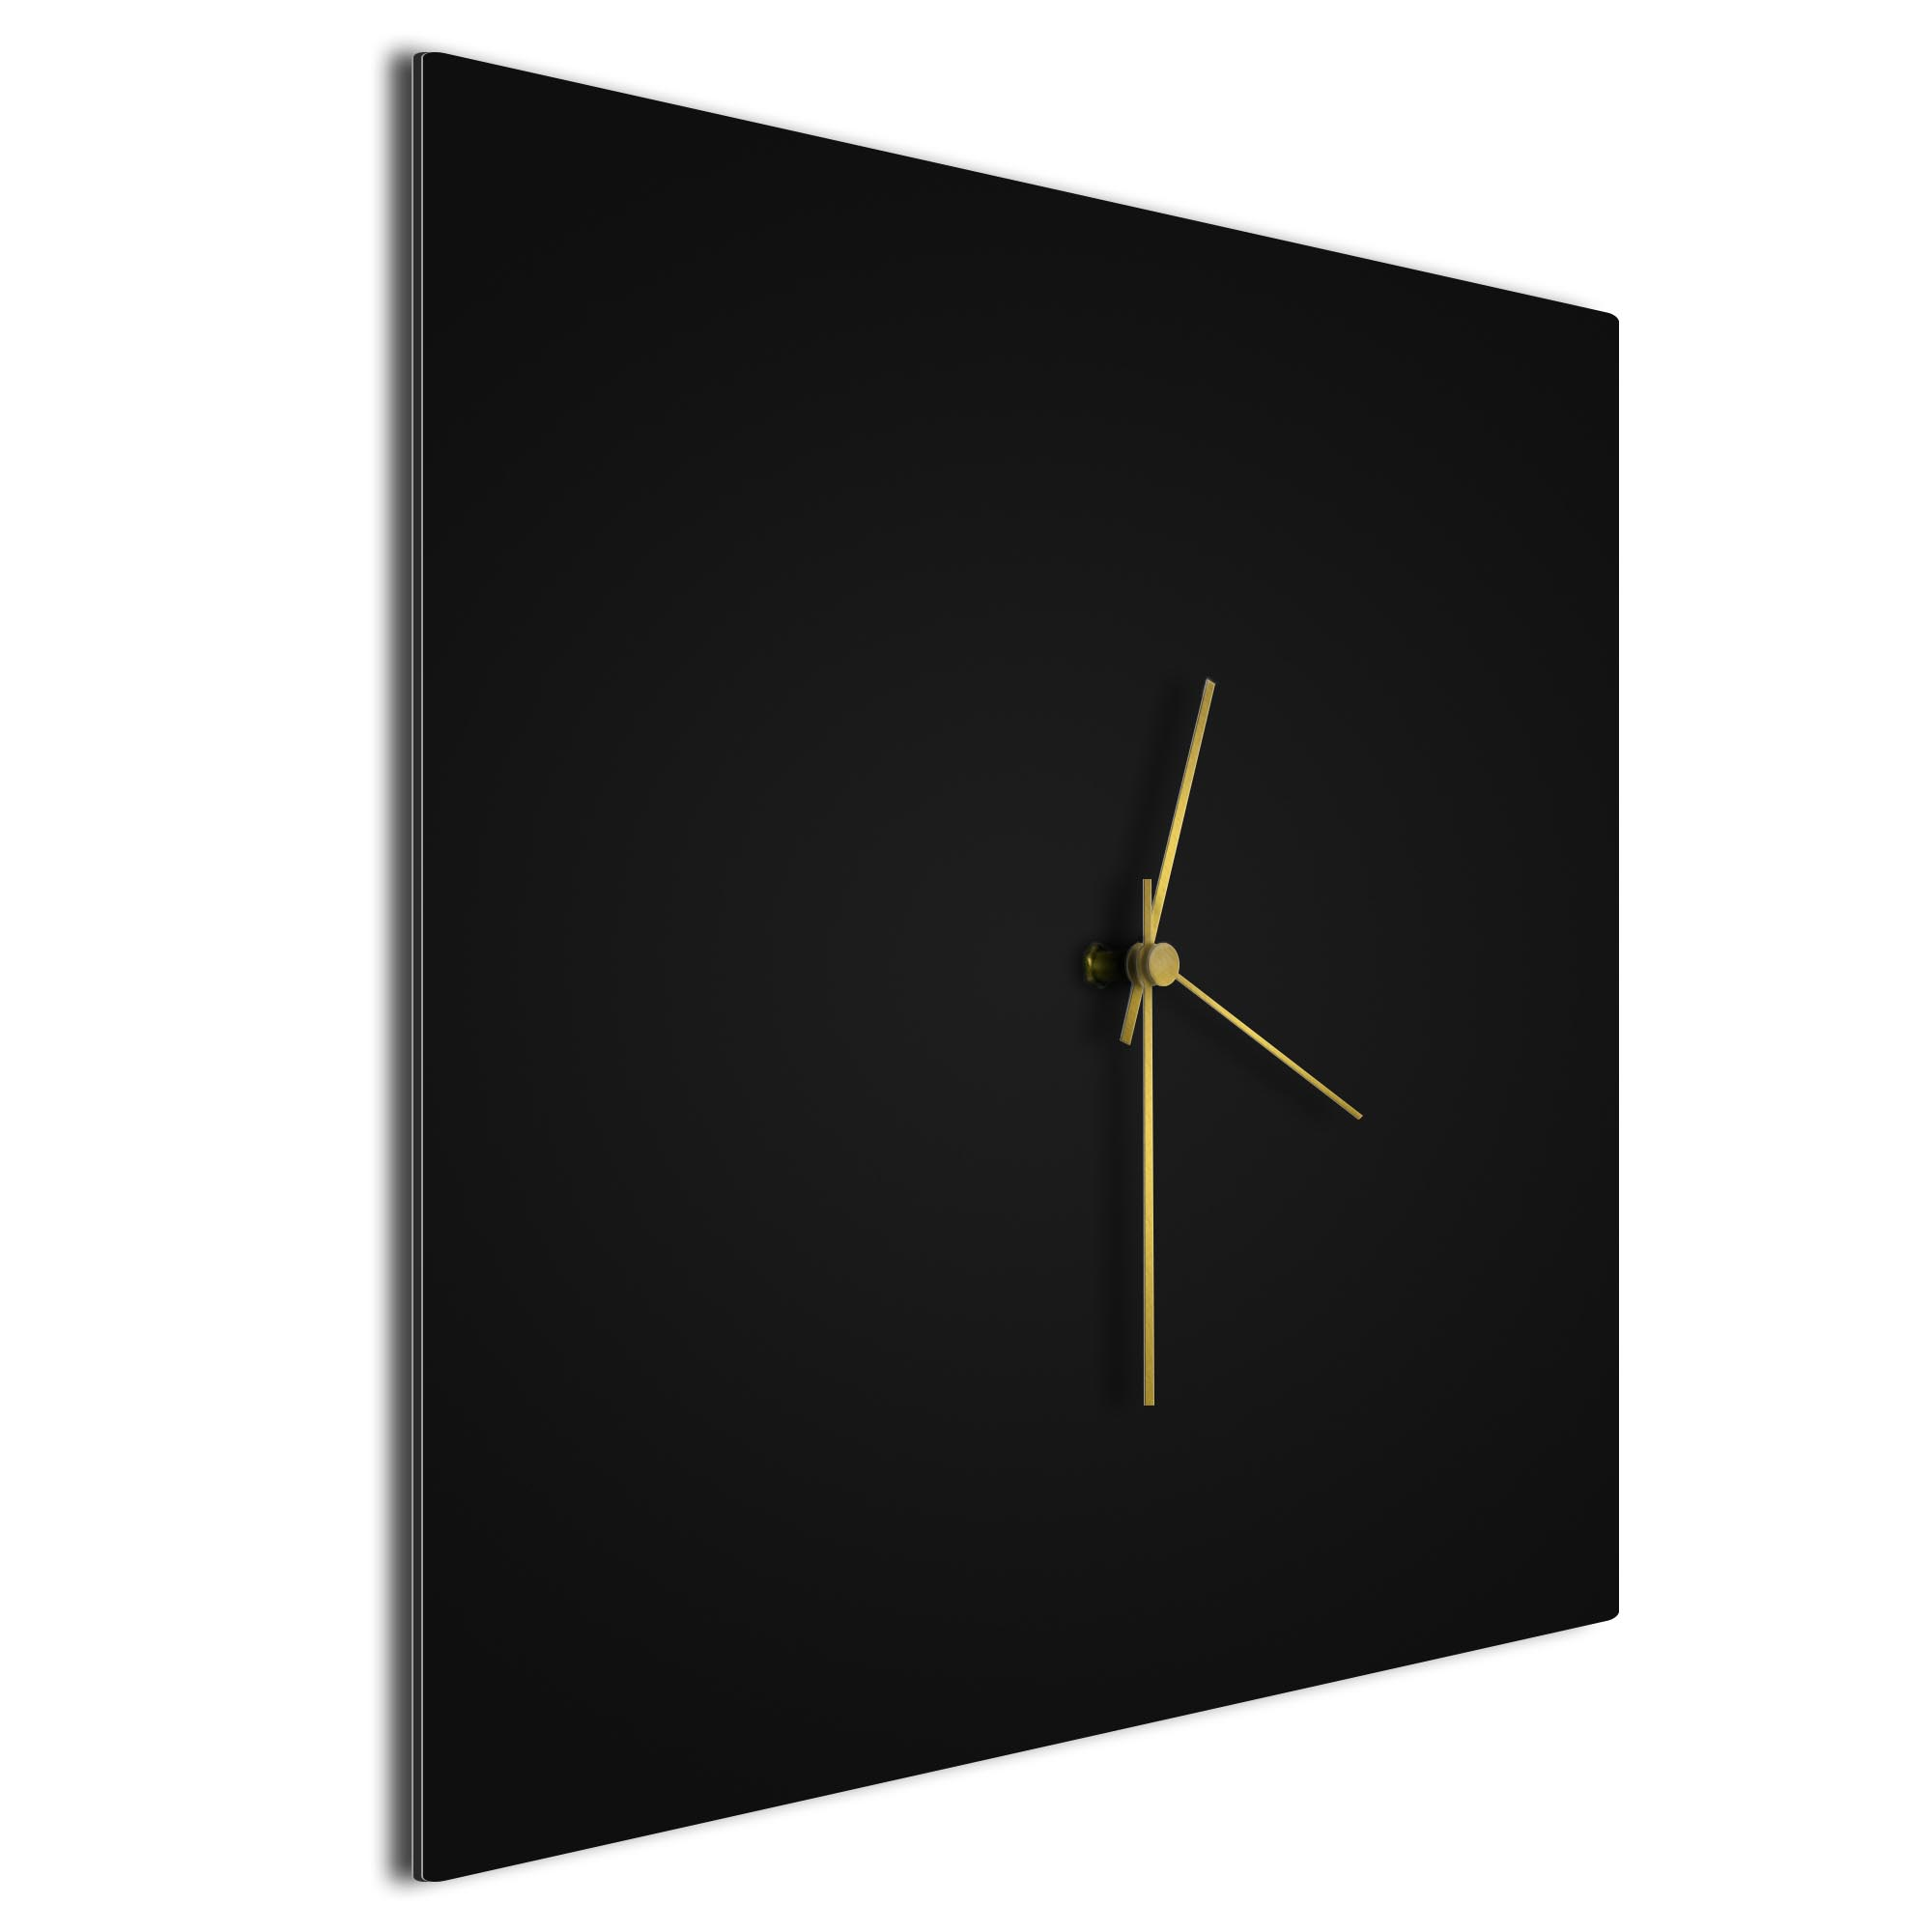 Blackout Gold Square Clock - Image 2